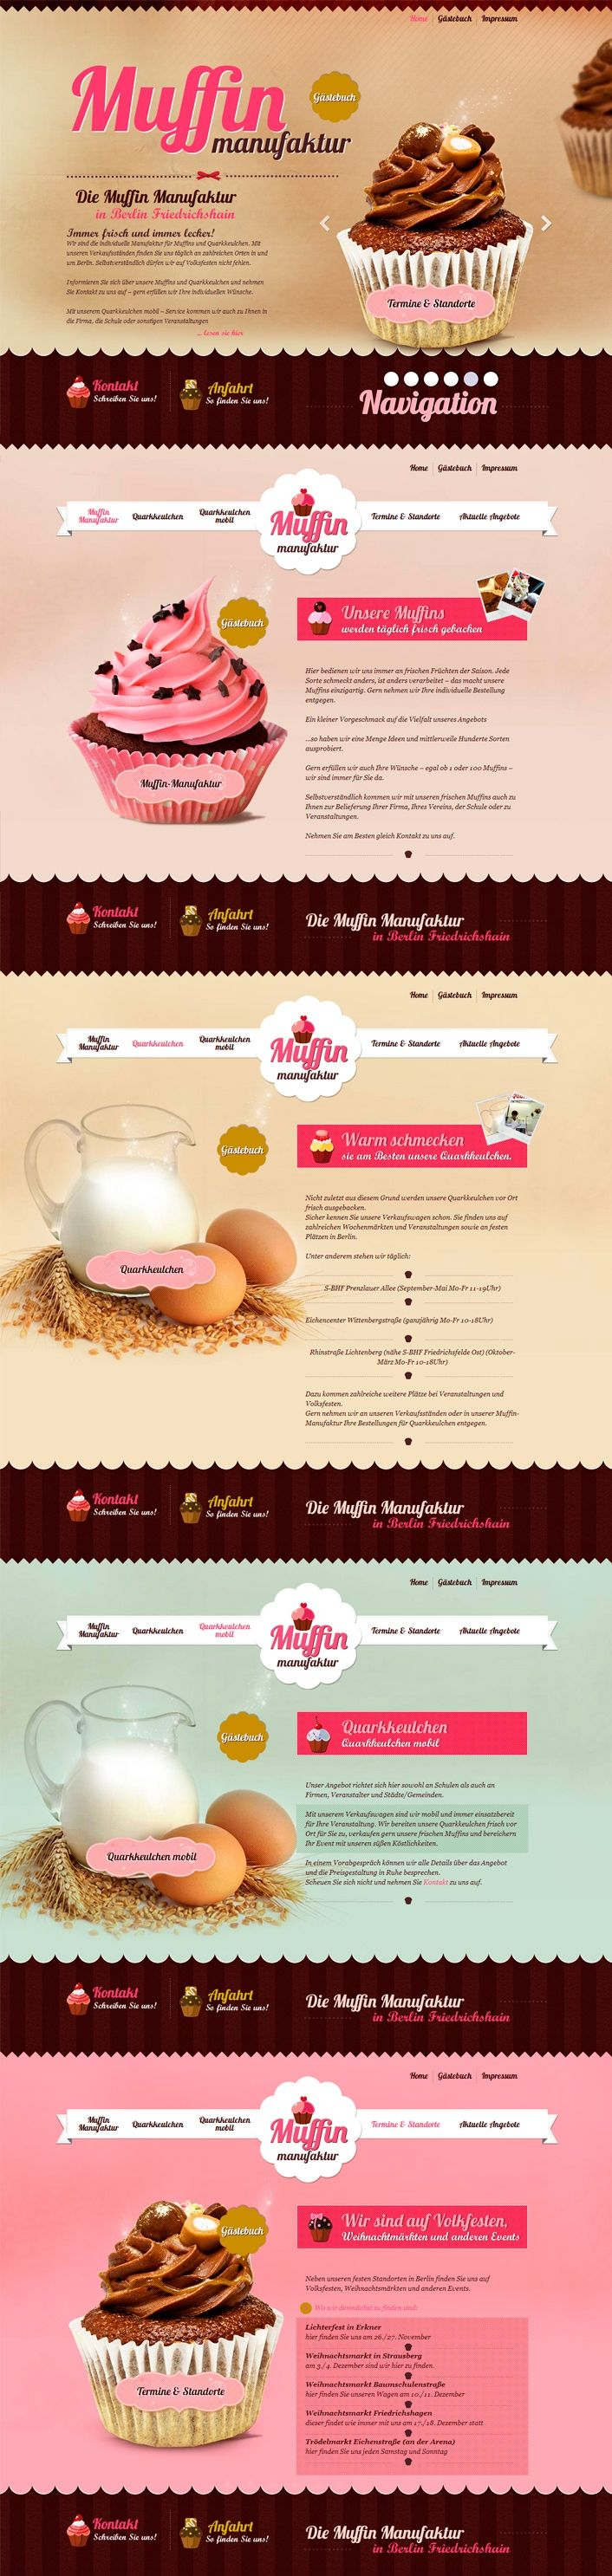 web design #website #webdesign